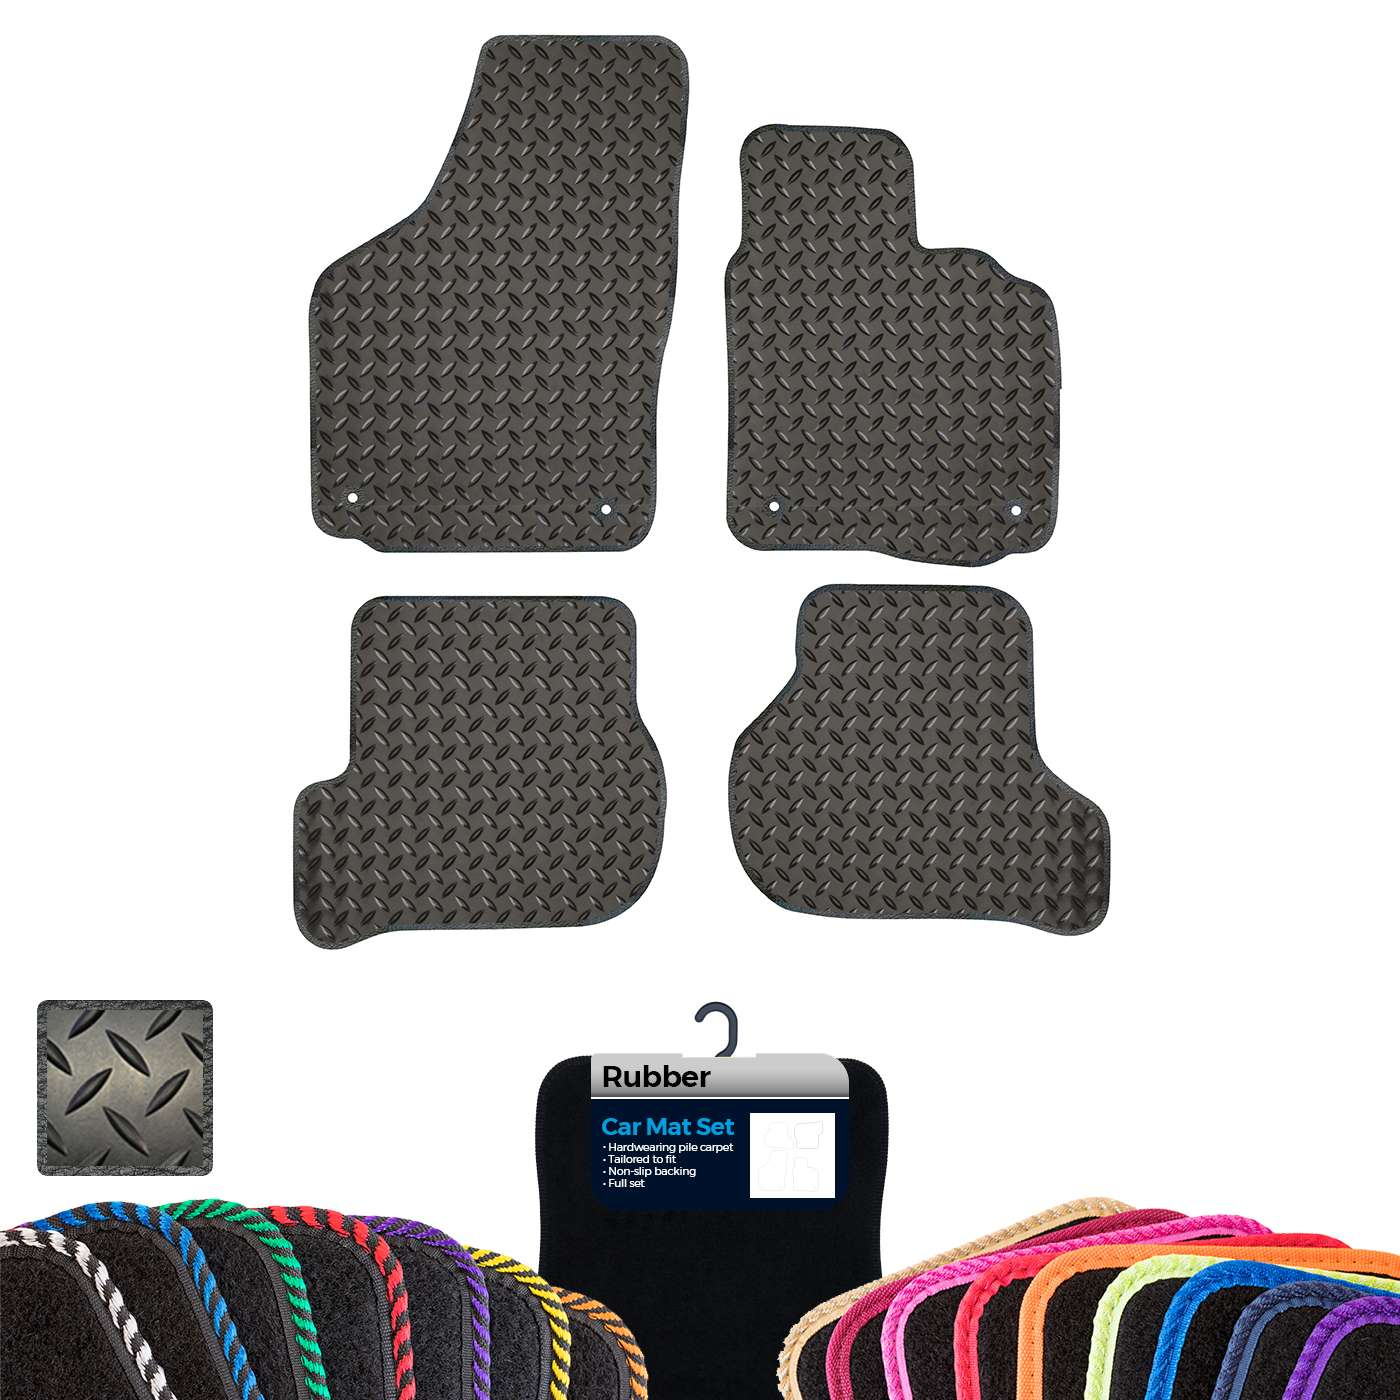 Custom Tailored Fit Car Mats Skoda Octavia 2013-present